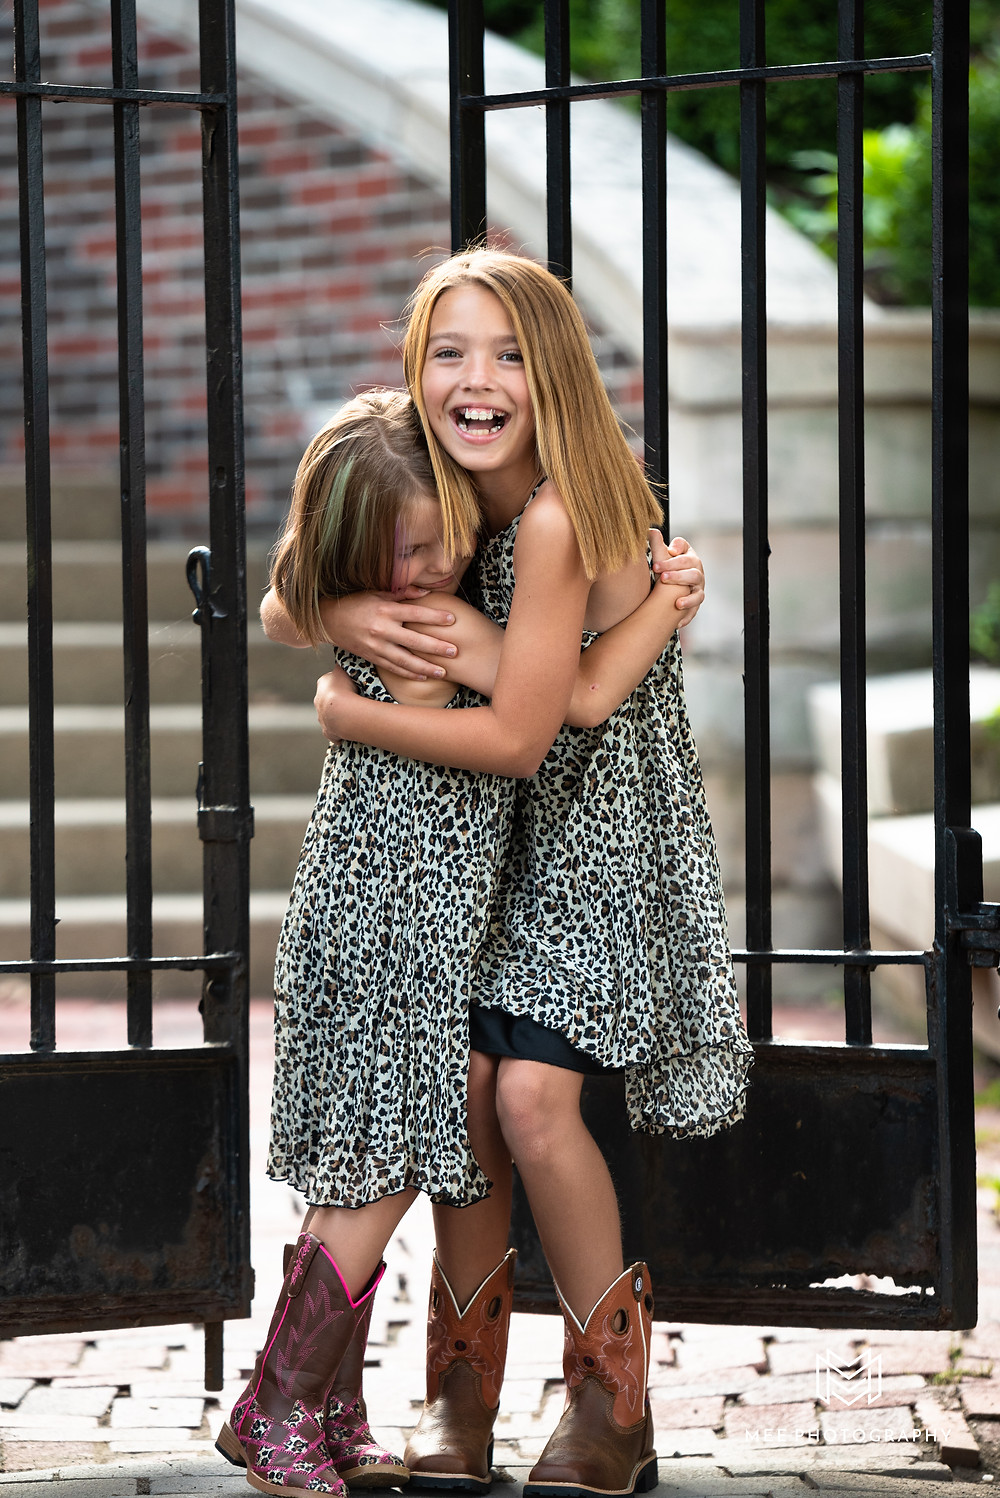 Sisters hugging and laughing in leopard print dresses in front of iron gates at Bethany College